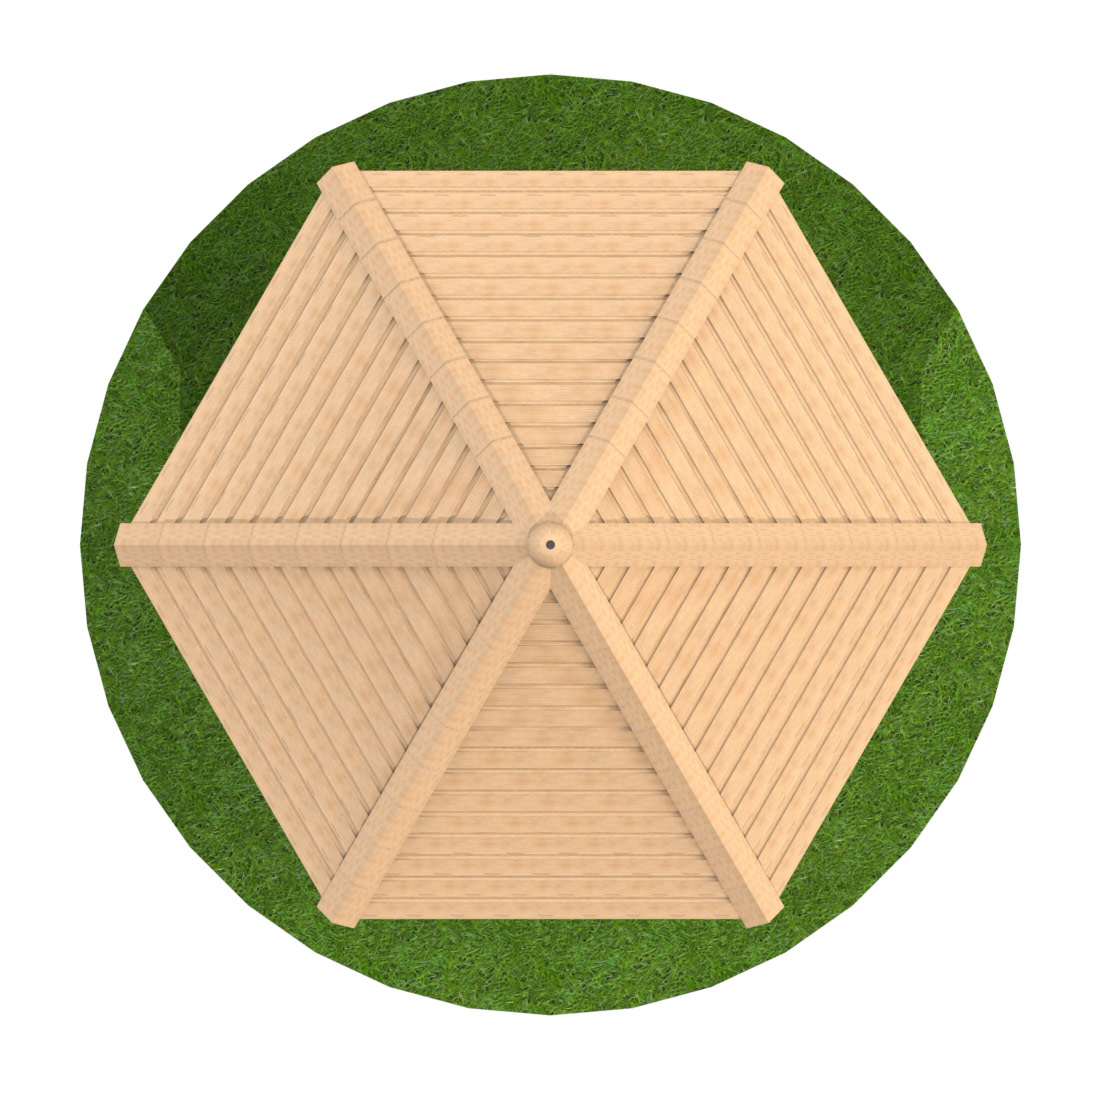 3m Hexagonal Timber Shelter with Seating and Half Clad Sides